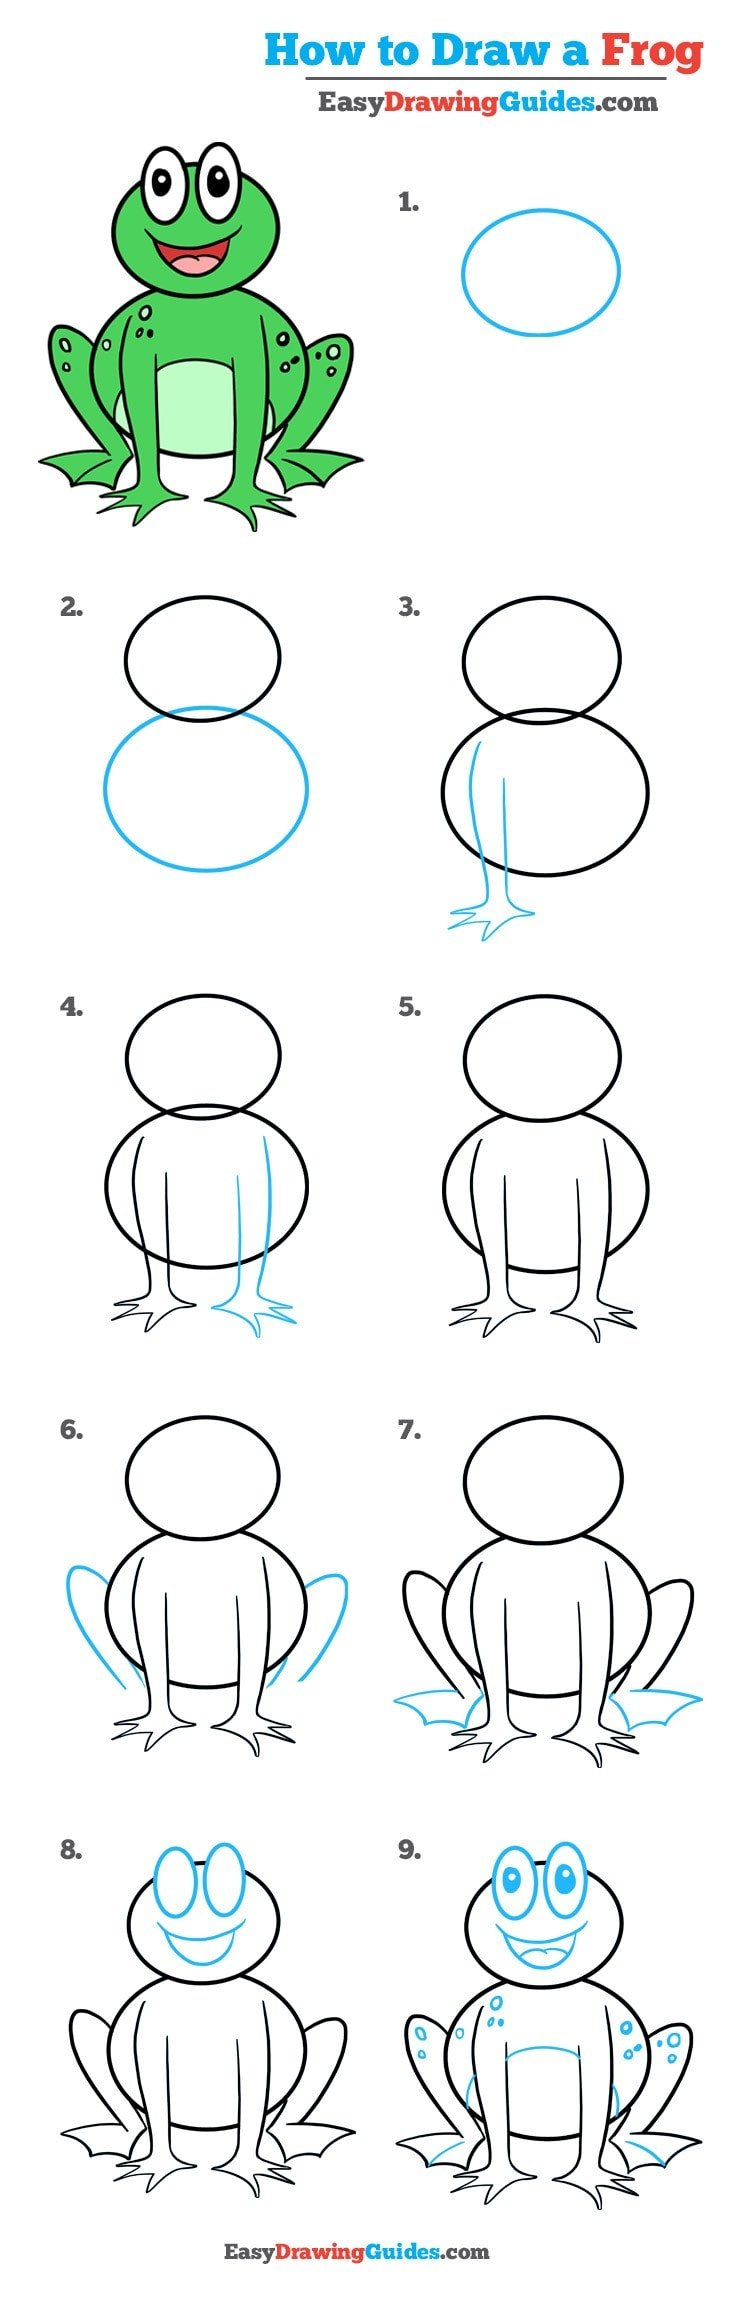 How to Draw Frog